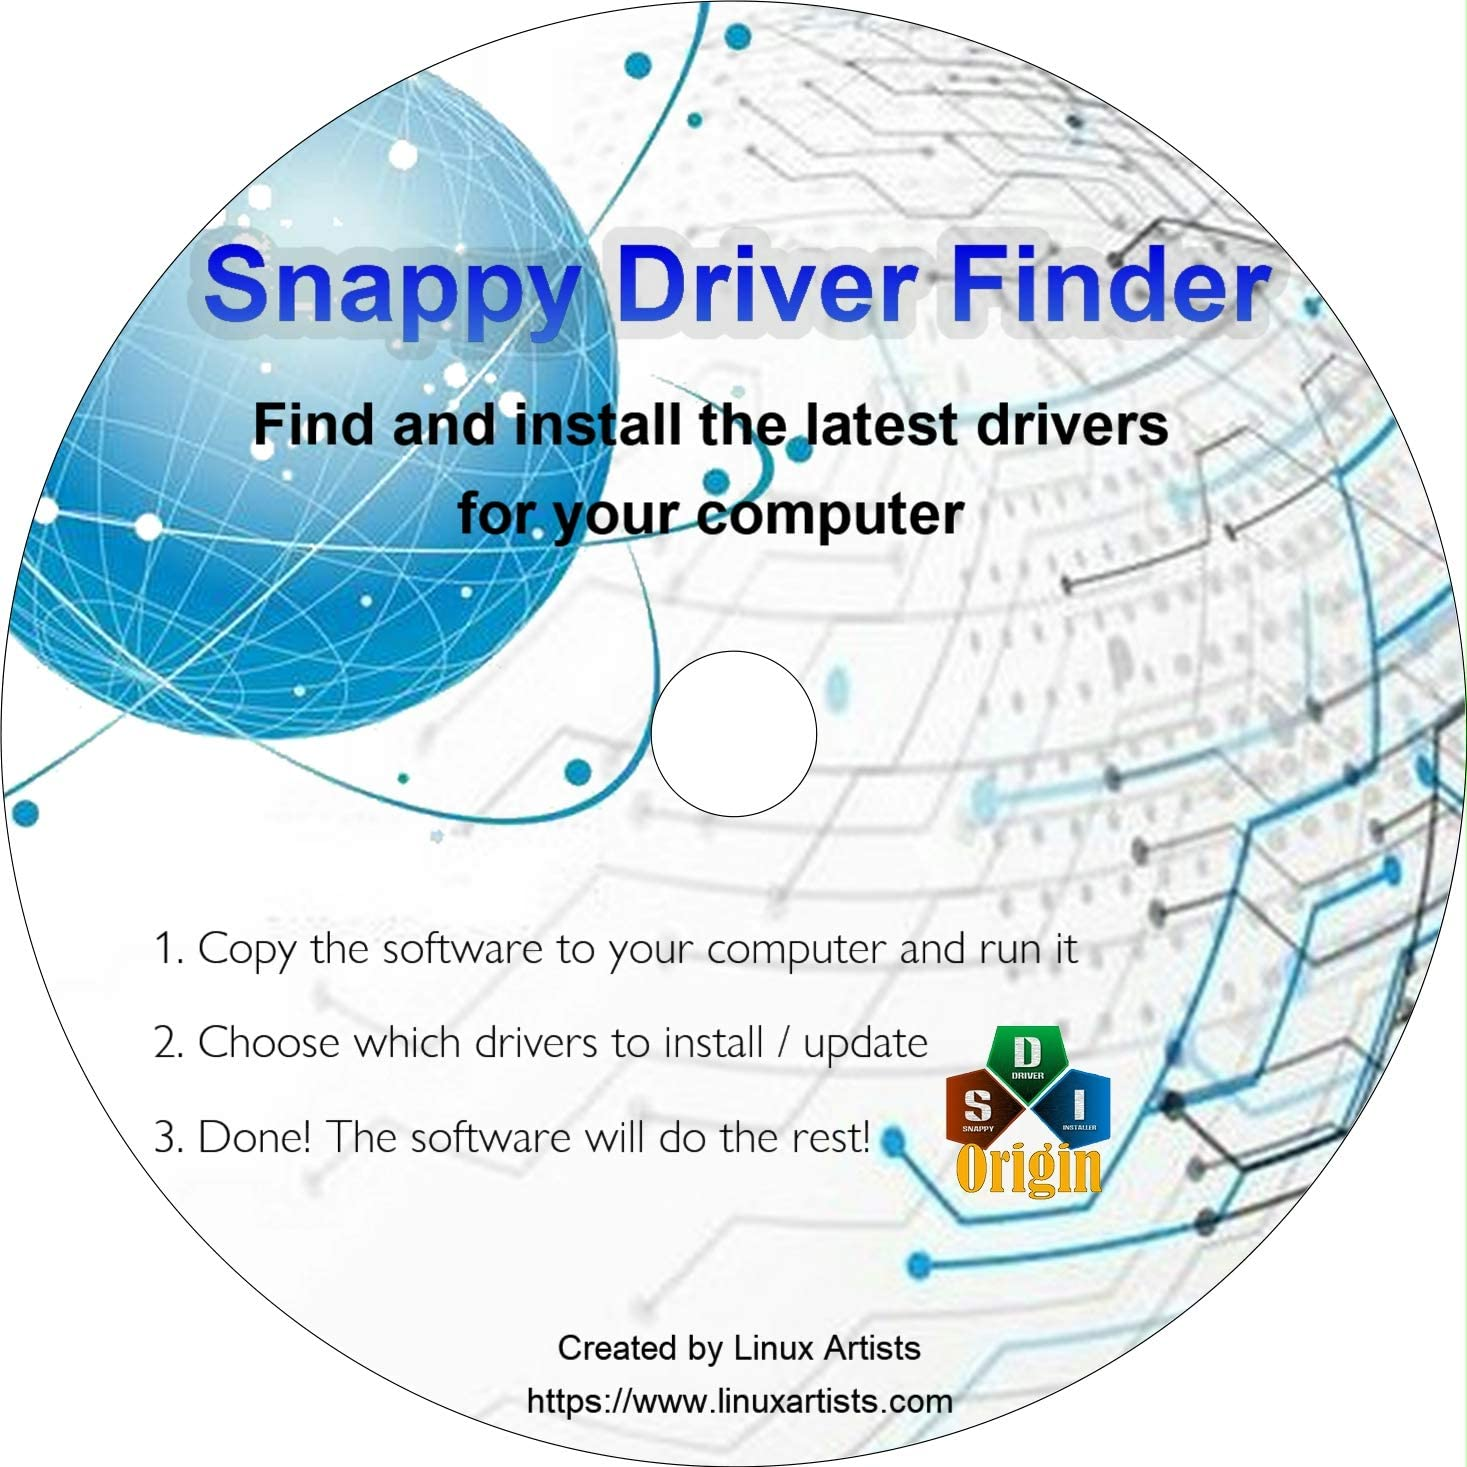 Moeller usb devices driver download for windows 10